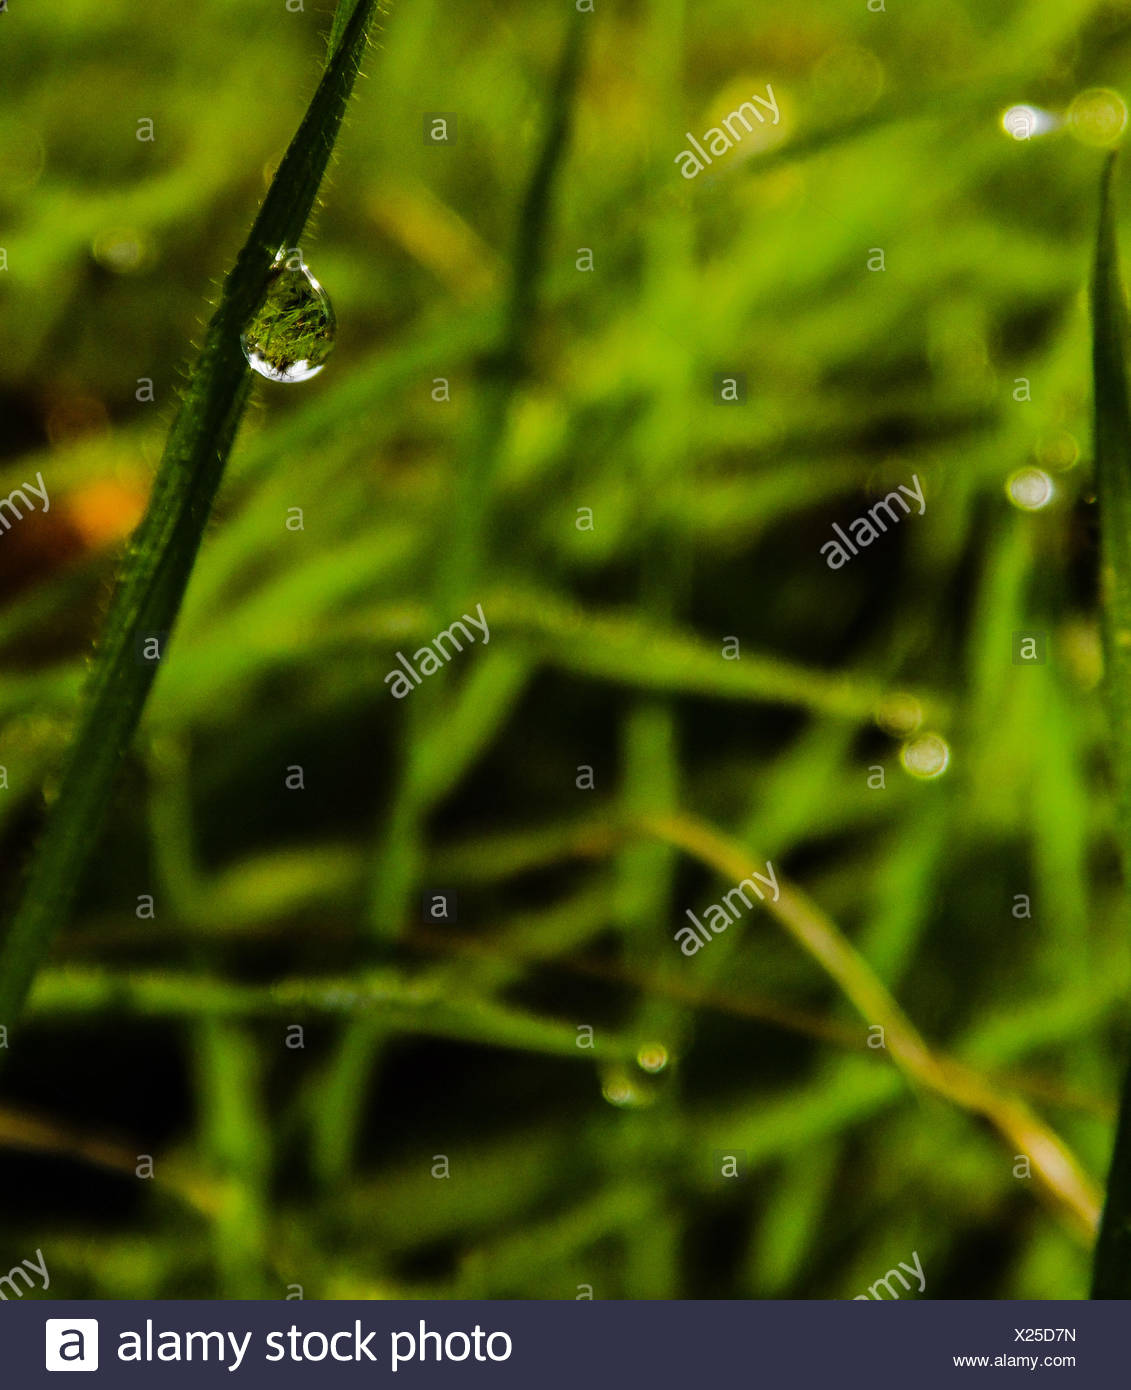 Close-Up Of Water Drop On Blade Of Grass - Stock Image